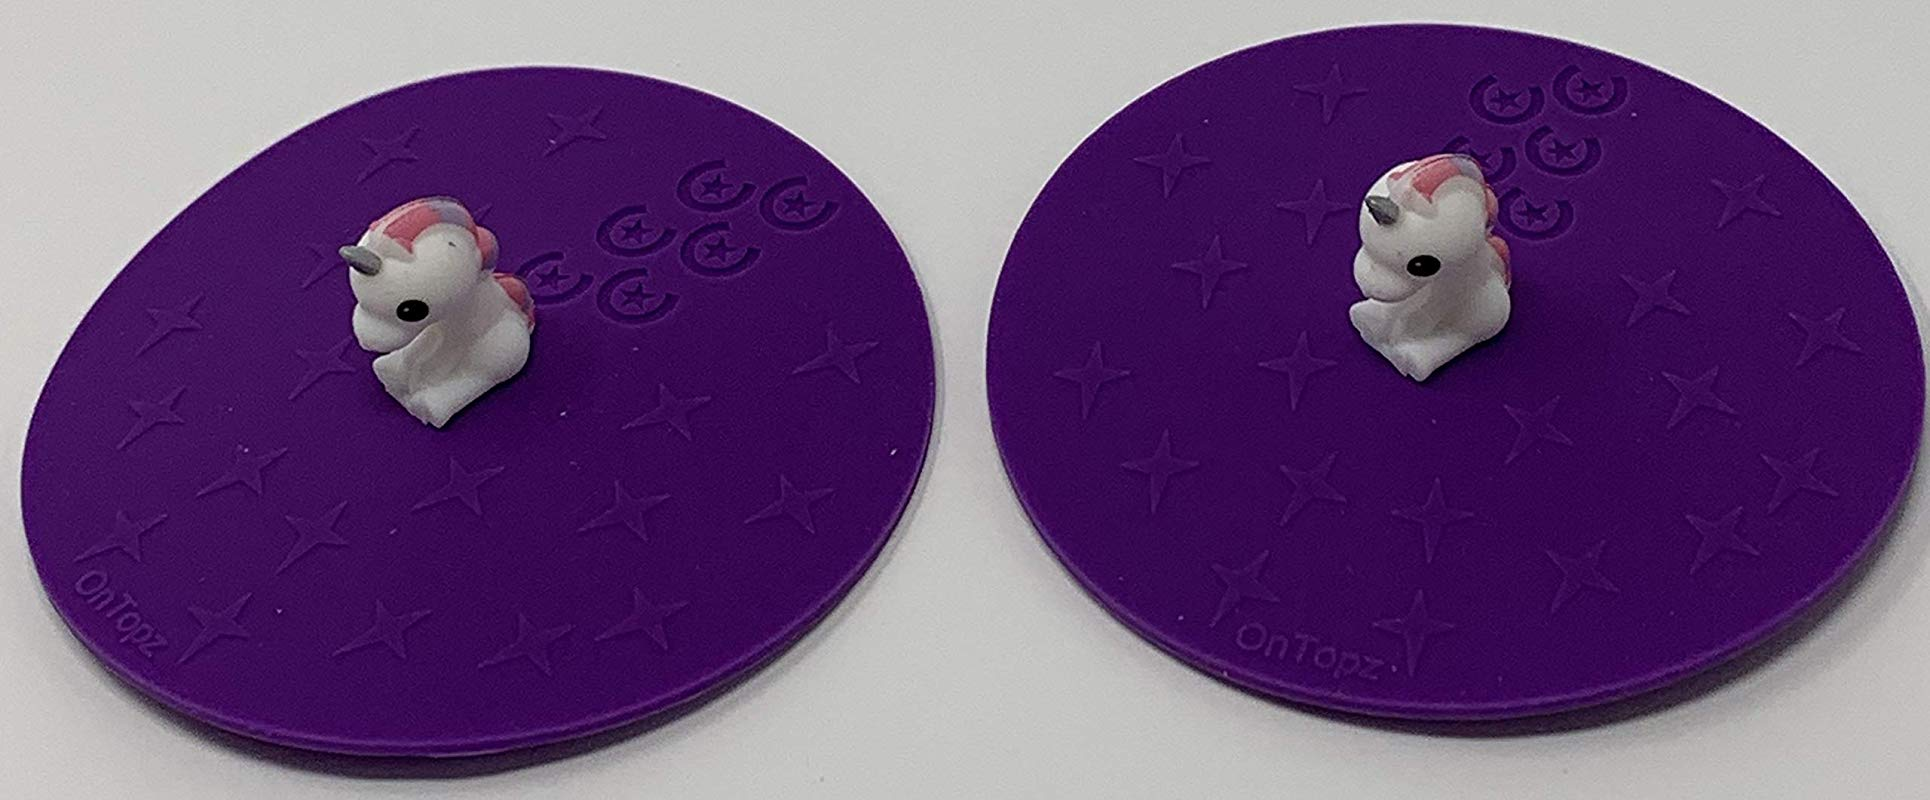 4 Unicorn Silicone Drink Lids 2 Pack